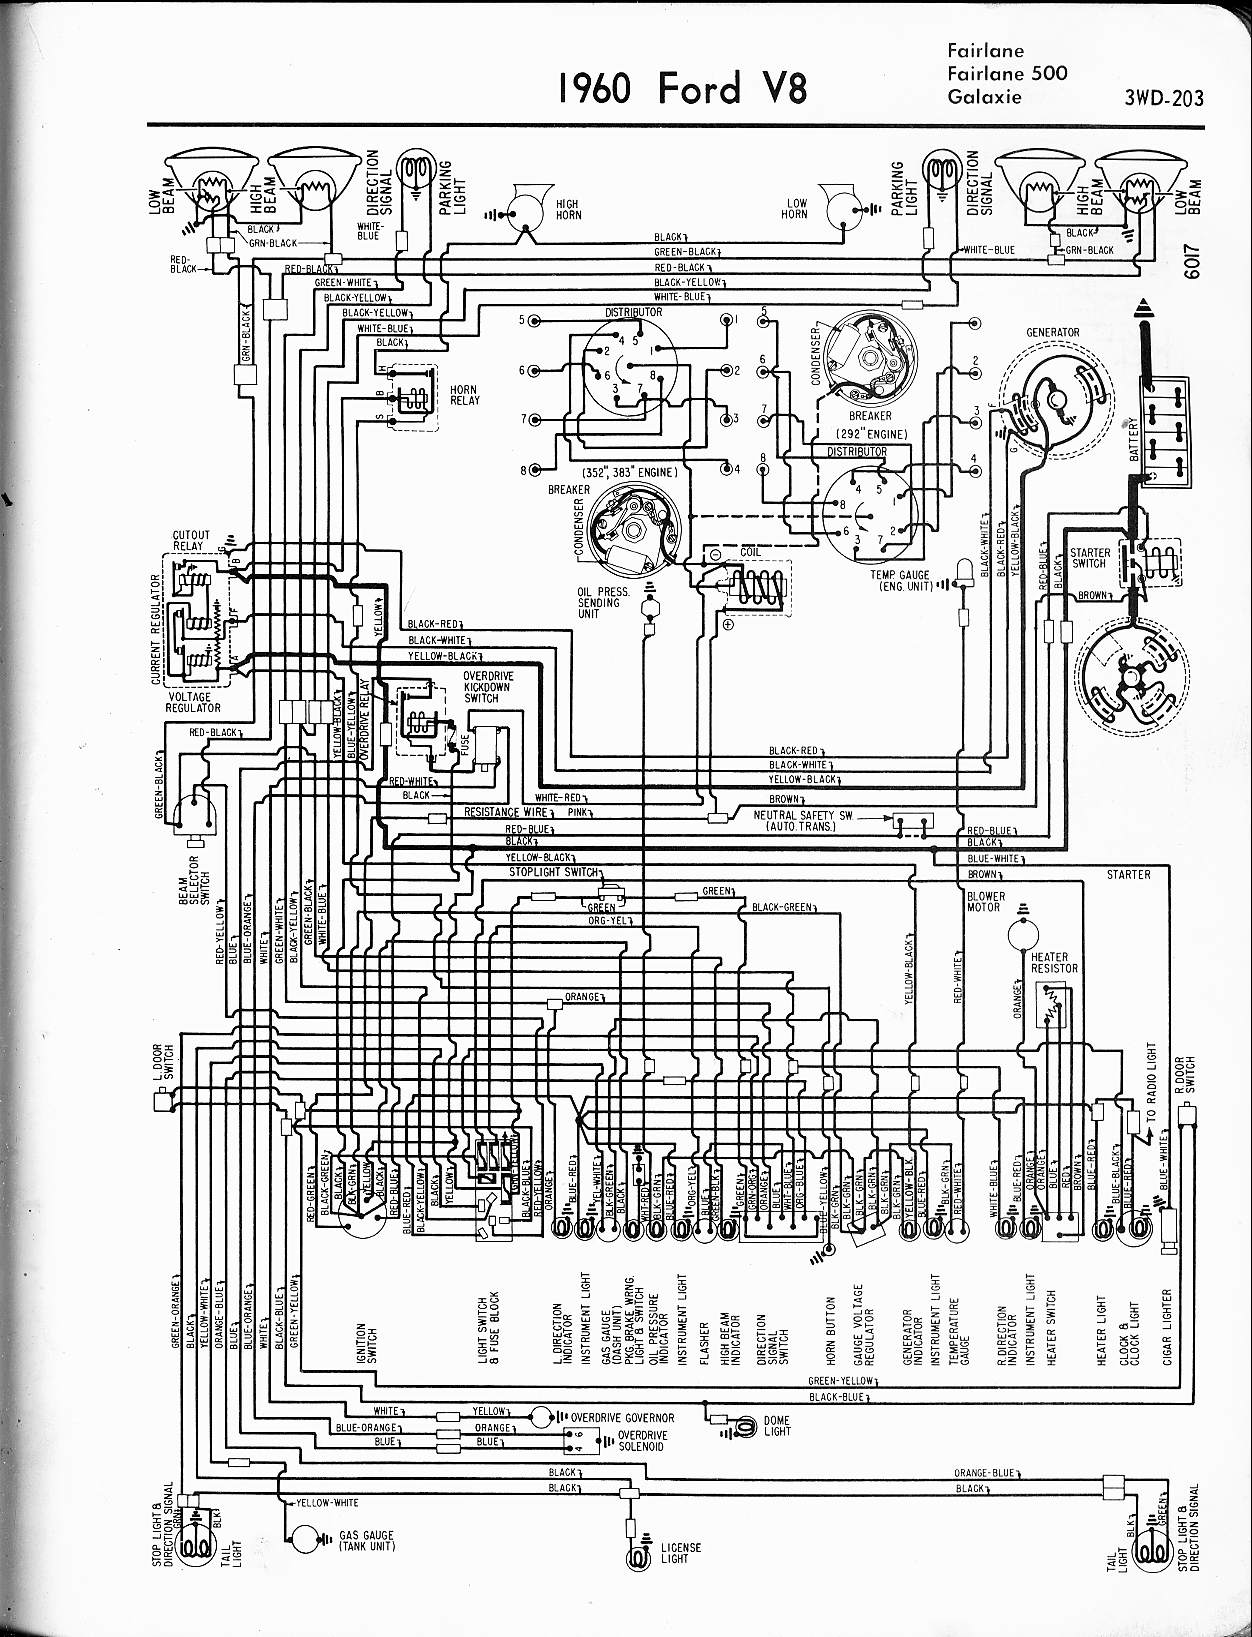 1965 ford f250 wiring diagram detailed schematics diagram ford wiring  manuals 1970 ford column wiring